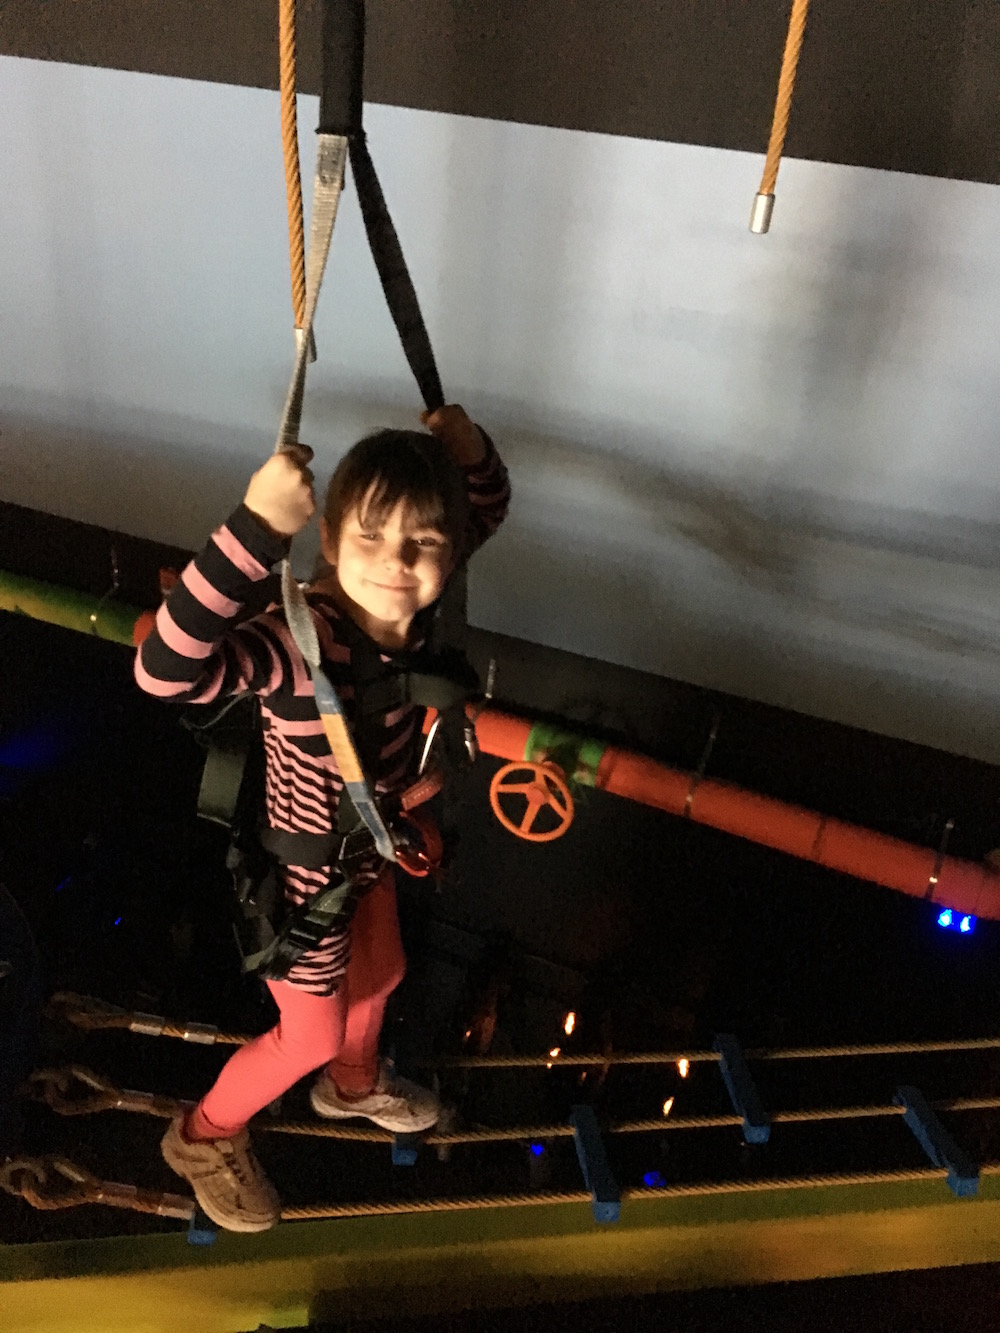 Big smile while walking the ropes course.